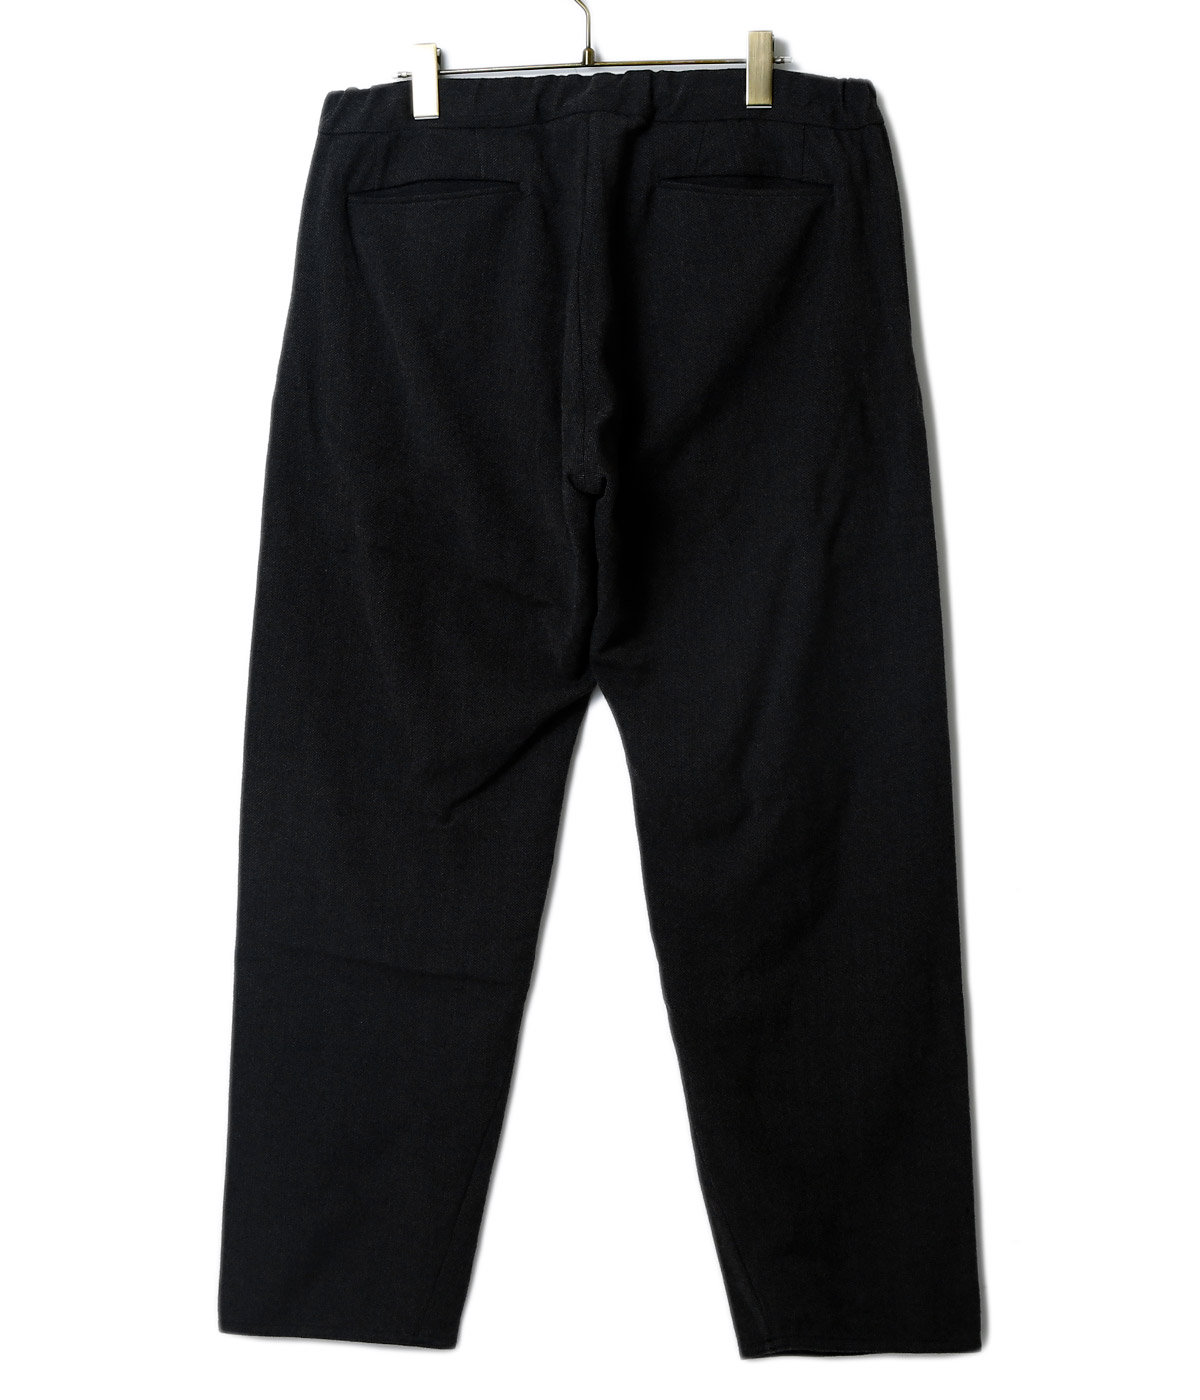 【予約】Washble Wool RATINE CURVE SLACKS